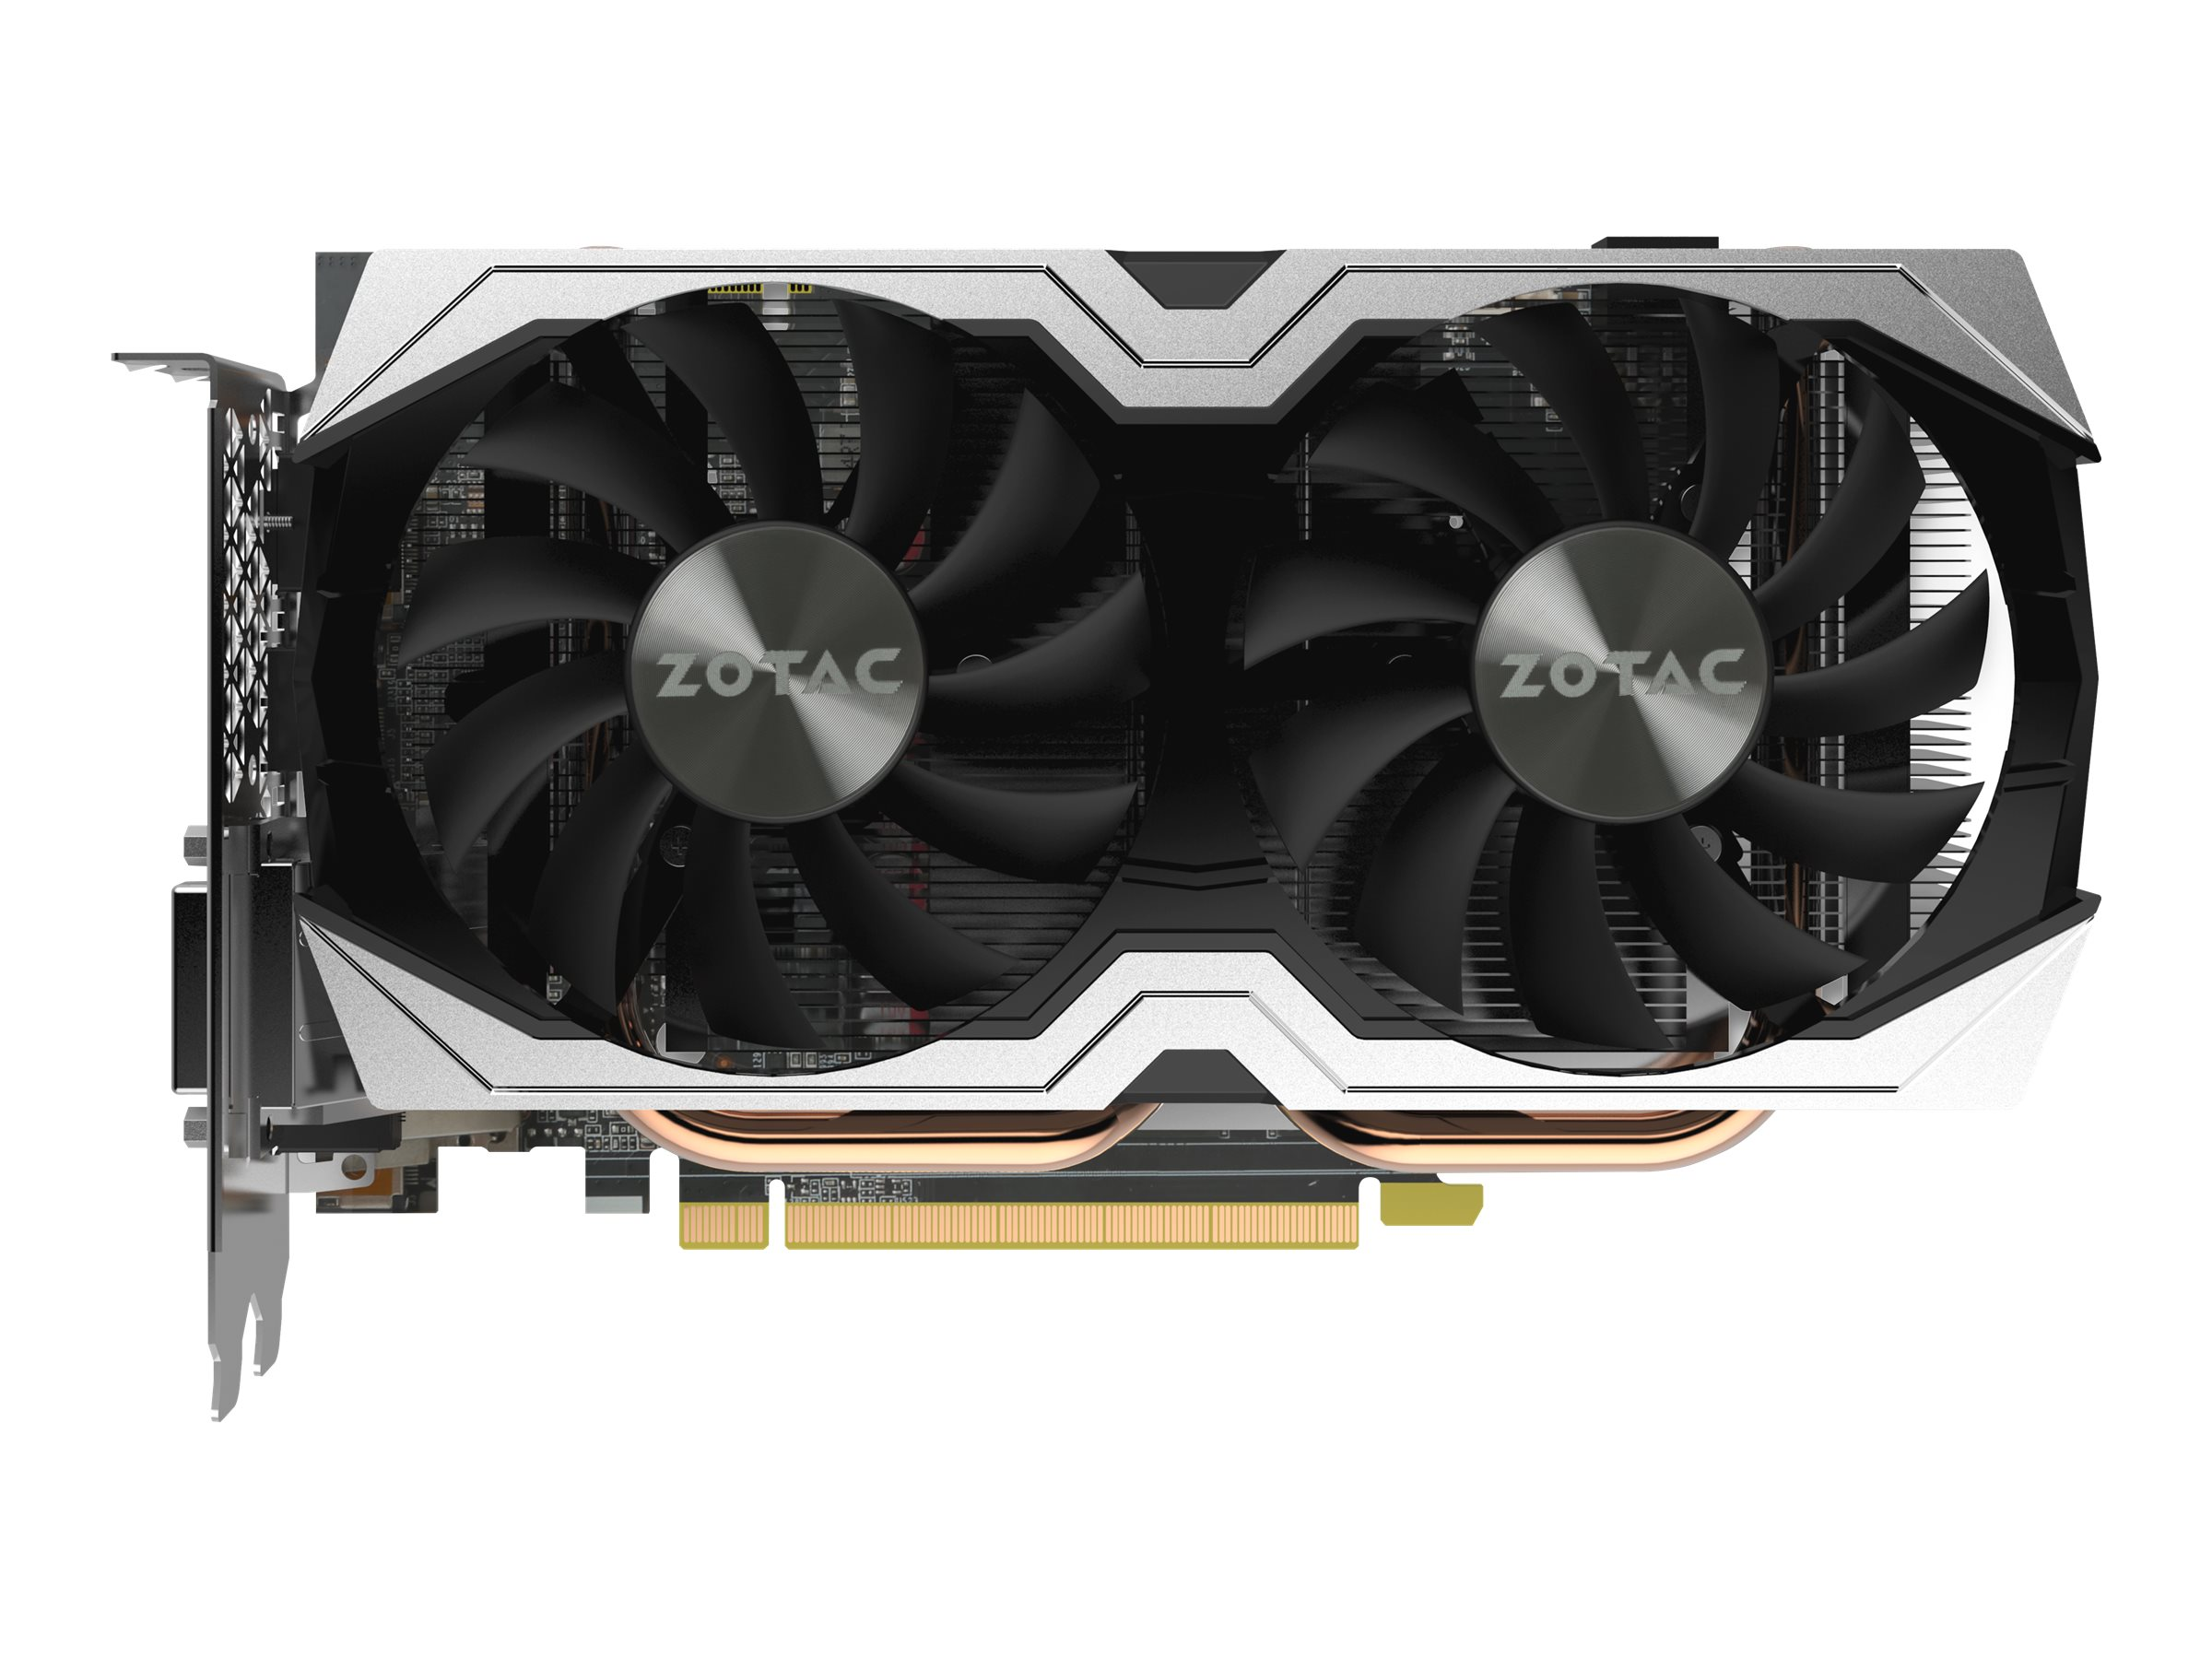 ZOTAC GeForce GTX 1070 Mini - Grafikkarten - 8 GB GDDR5 - PCIe 3.0 - DVI, HDMI, 3 x DisplayPort